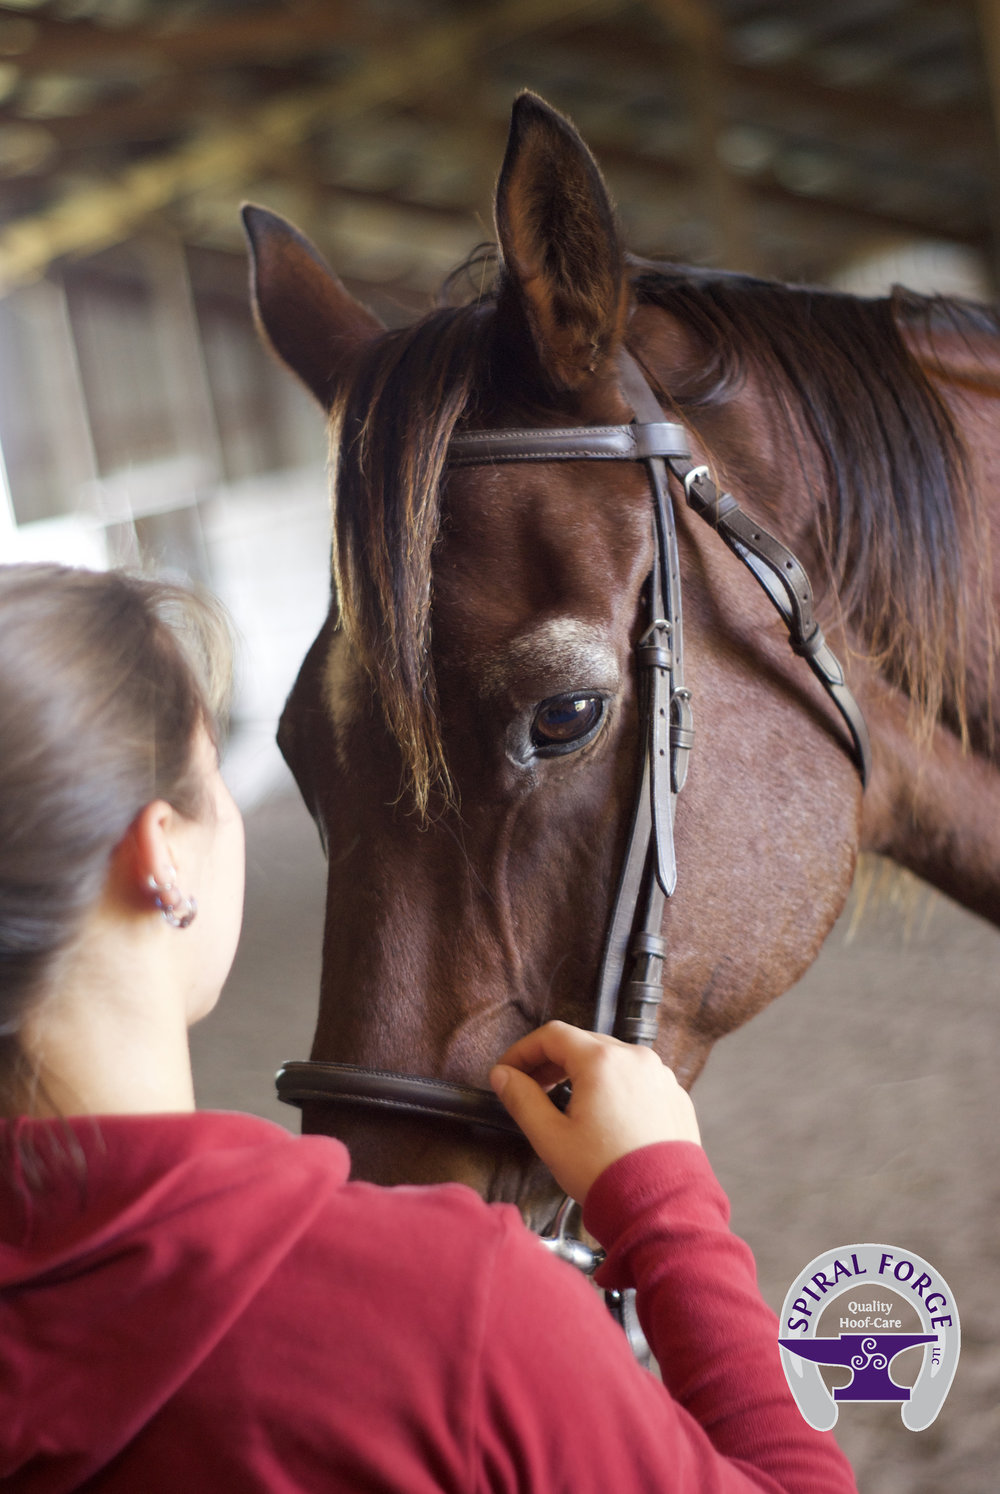 - Jenny understands exactly how much a horse can mean to a person. She extends compassion to the animals she works on, while running an efficient and profitable business.